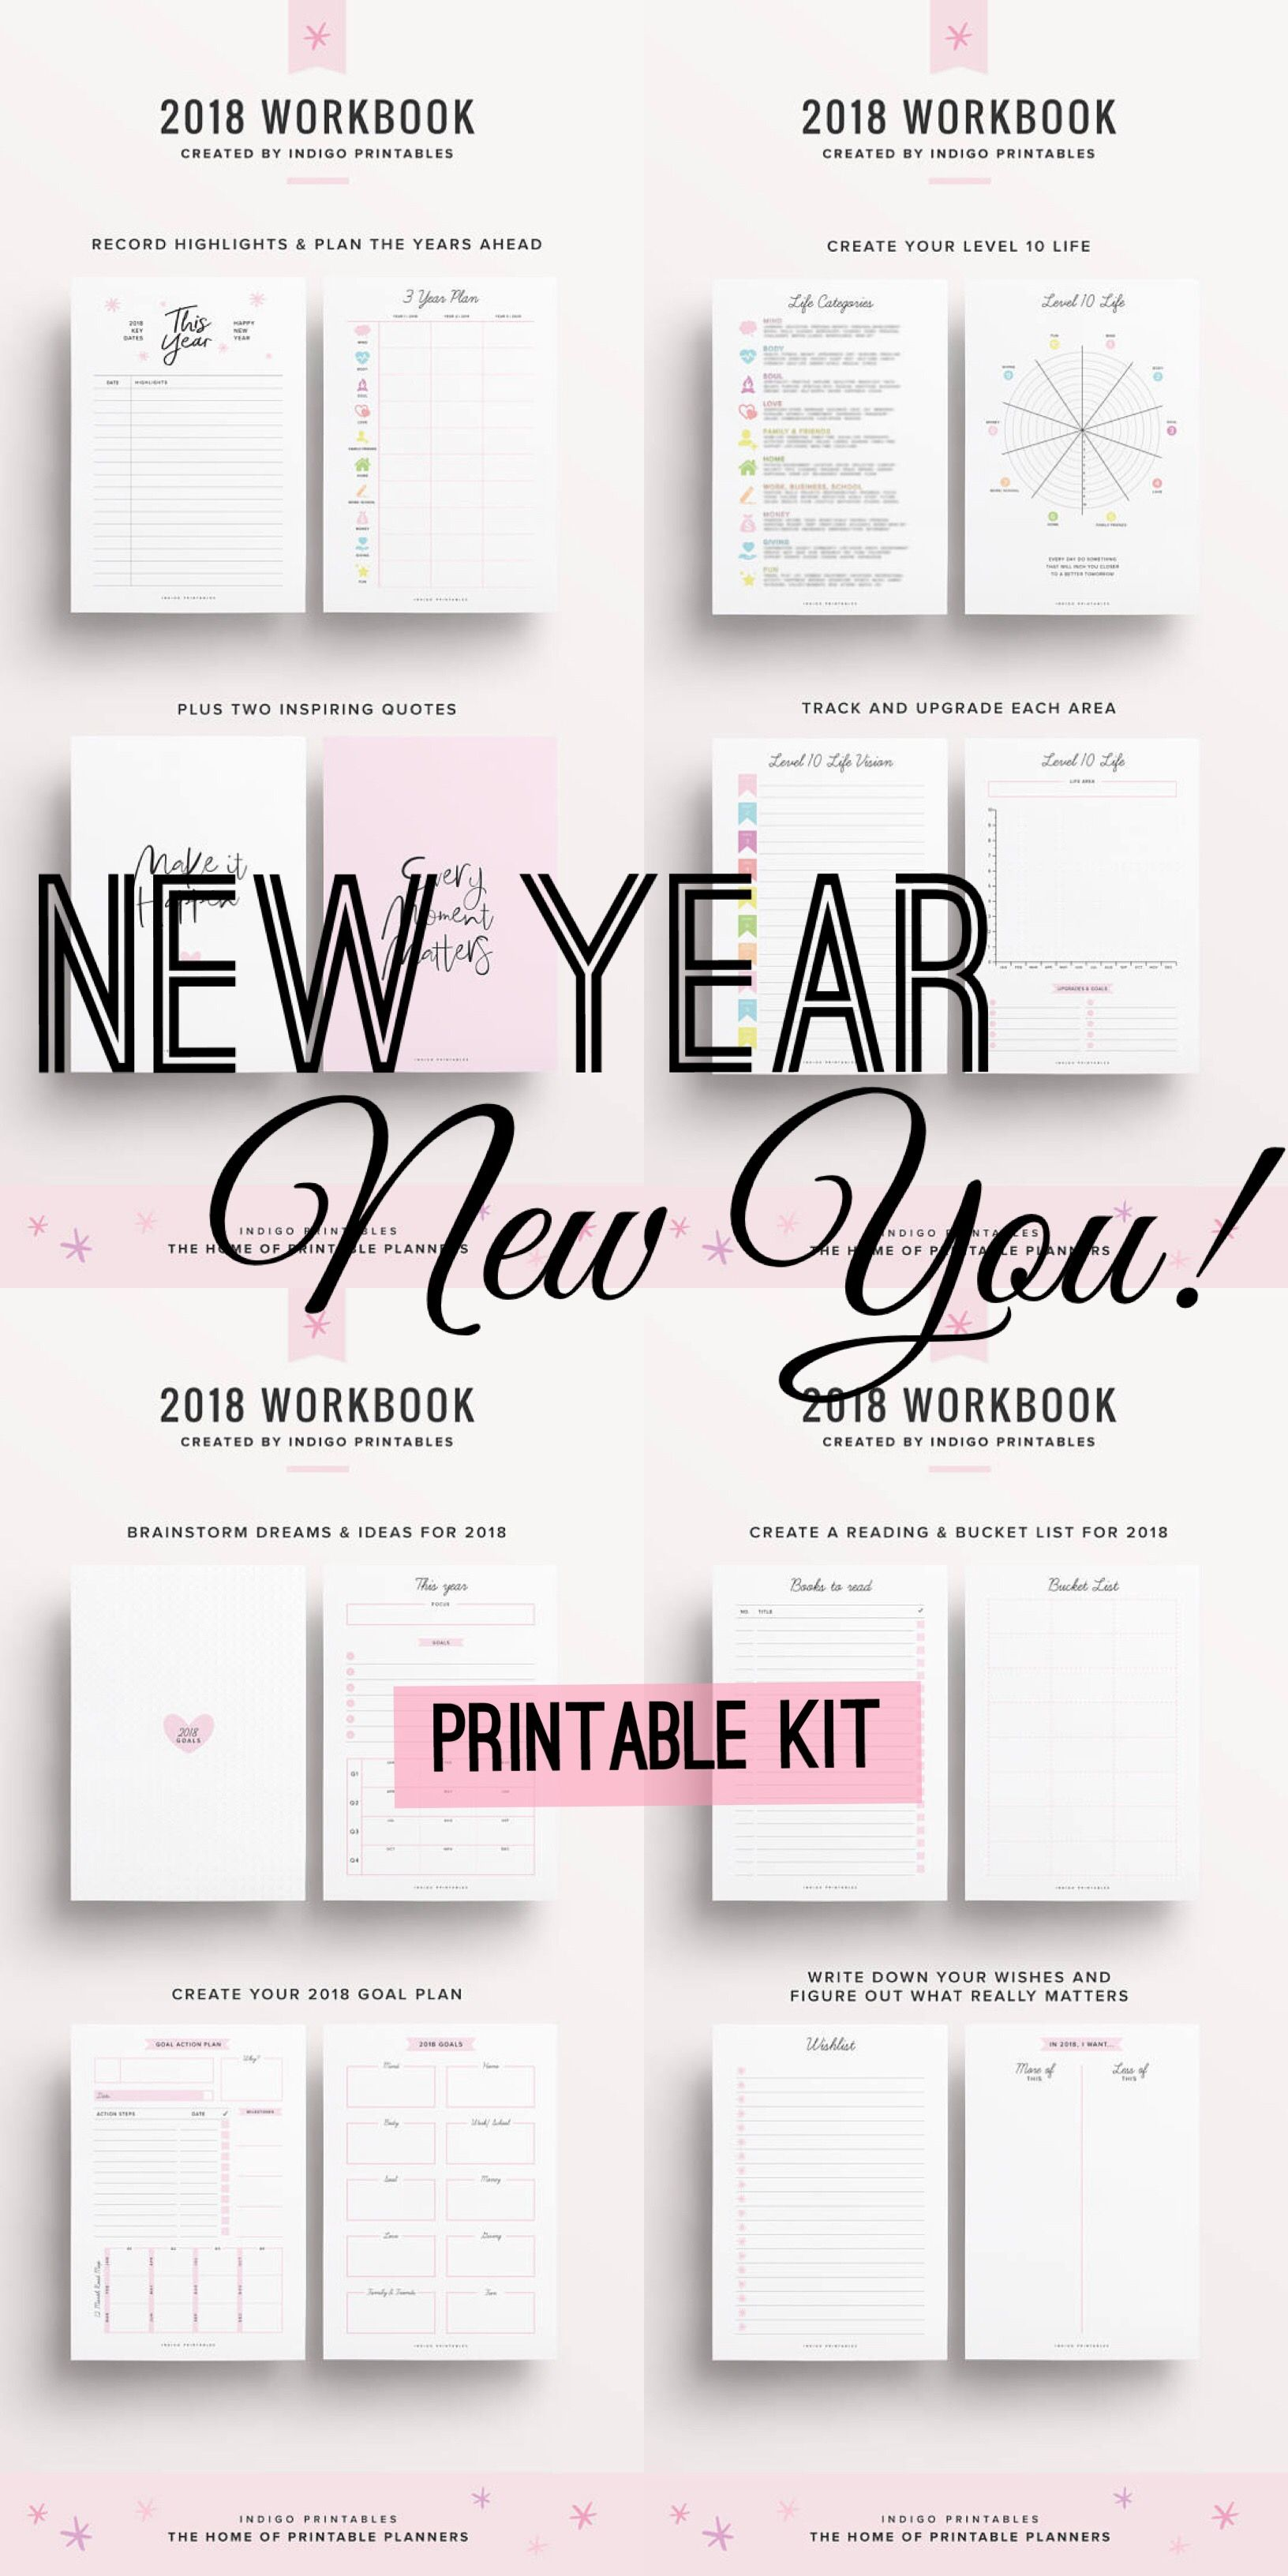 ad new year new you renew yourself with this fabulous 2018 workbook printable kit instant download create your new years resolutions and goals